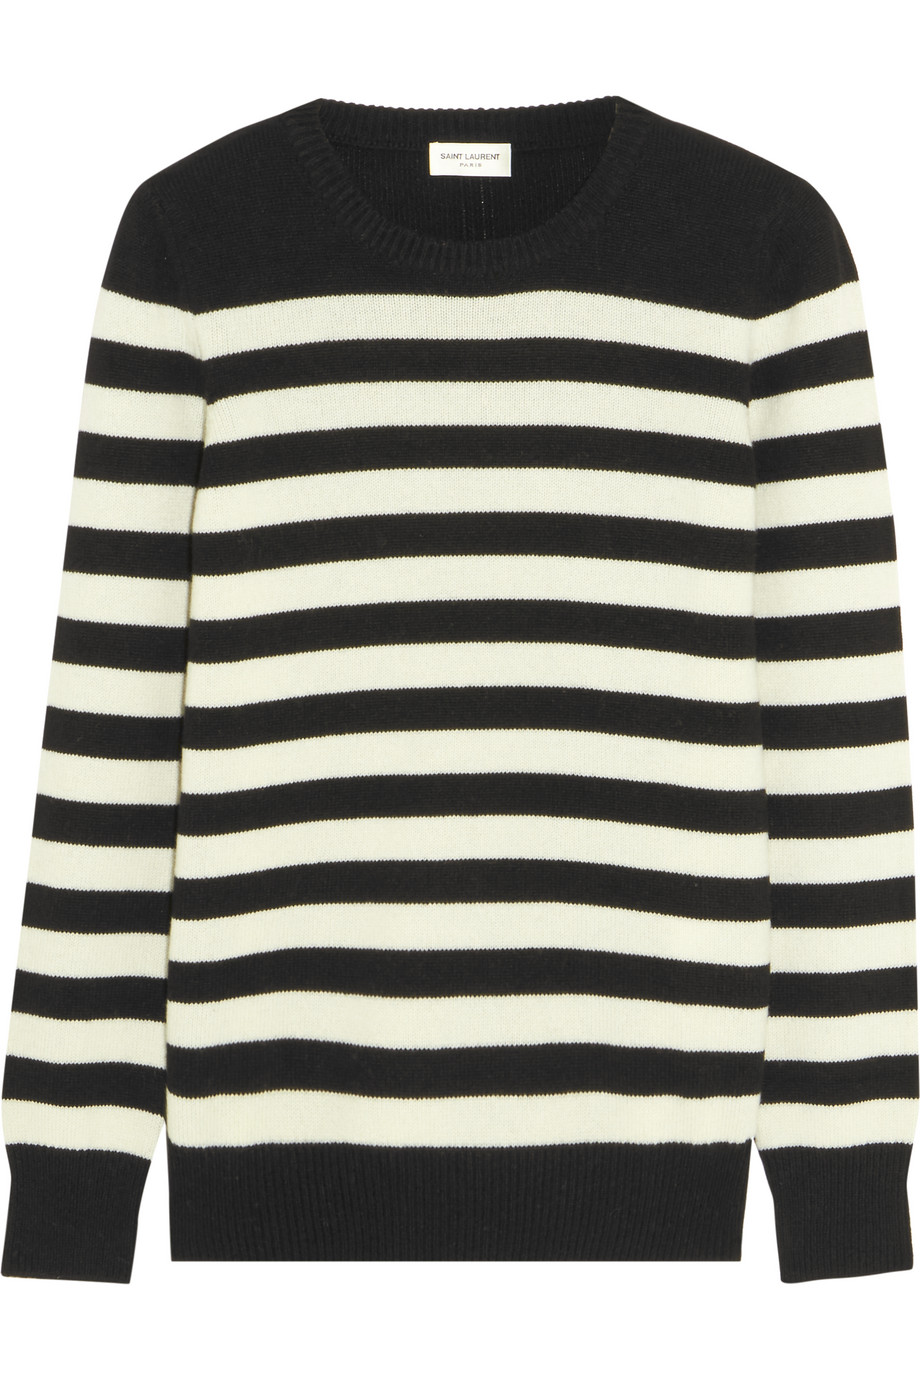 Saint Laurent Striped Cashmere Sweater, Black, Women's, Size: XS